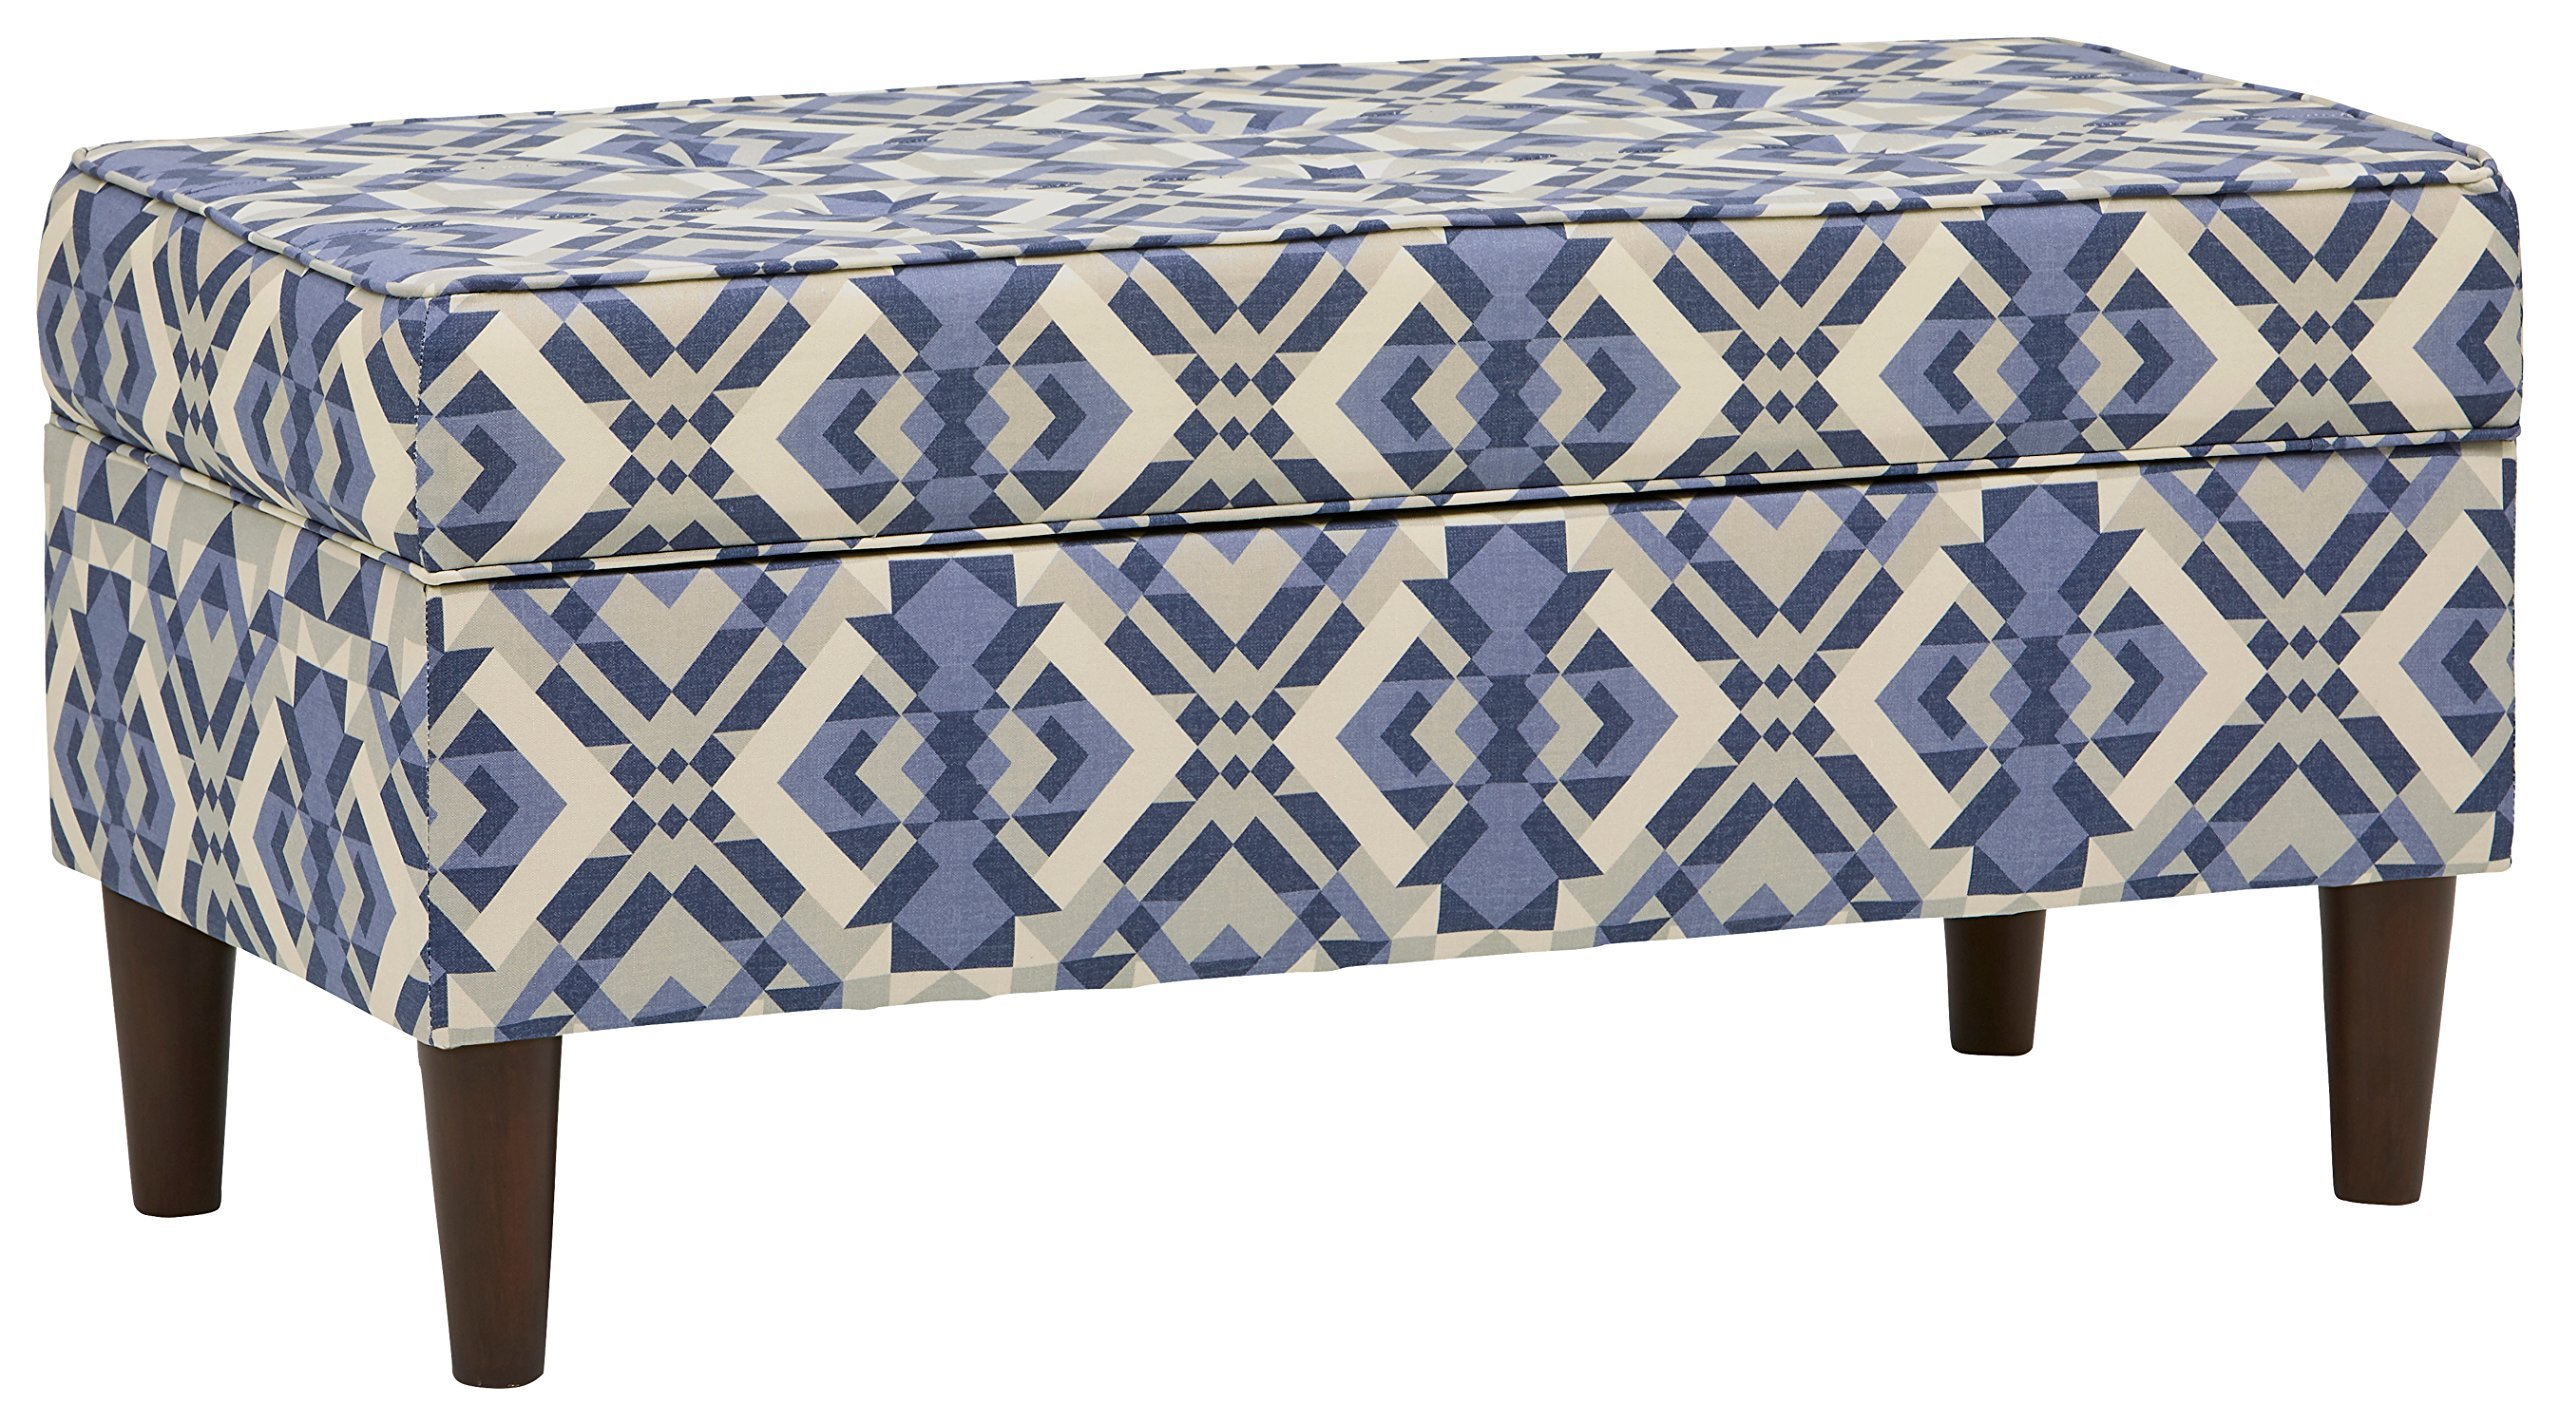 """Rivet Martin Modern Storage Bench, 39""""W, Scopic Blue - You're having friends over, but didn't have time to clean first. No problem - this storage ottoman is a great place to quickly stash clutter. In addition to its functionality, it's a stylish piece when closed. NOTE: This item is made-to-order, please expect an increased shipping time. 39"""" W x 19"""" D x 19"""" H - entryway-furniture-decor, entryway-laundry-room, benches - 91upK6BuZaL -"""